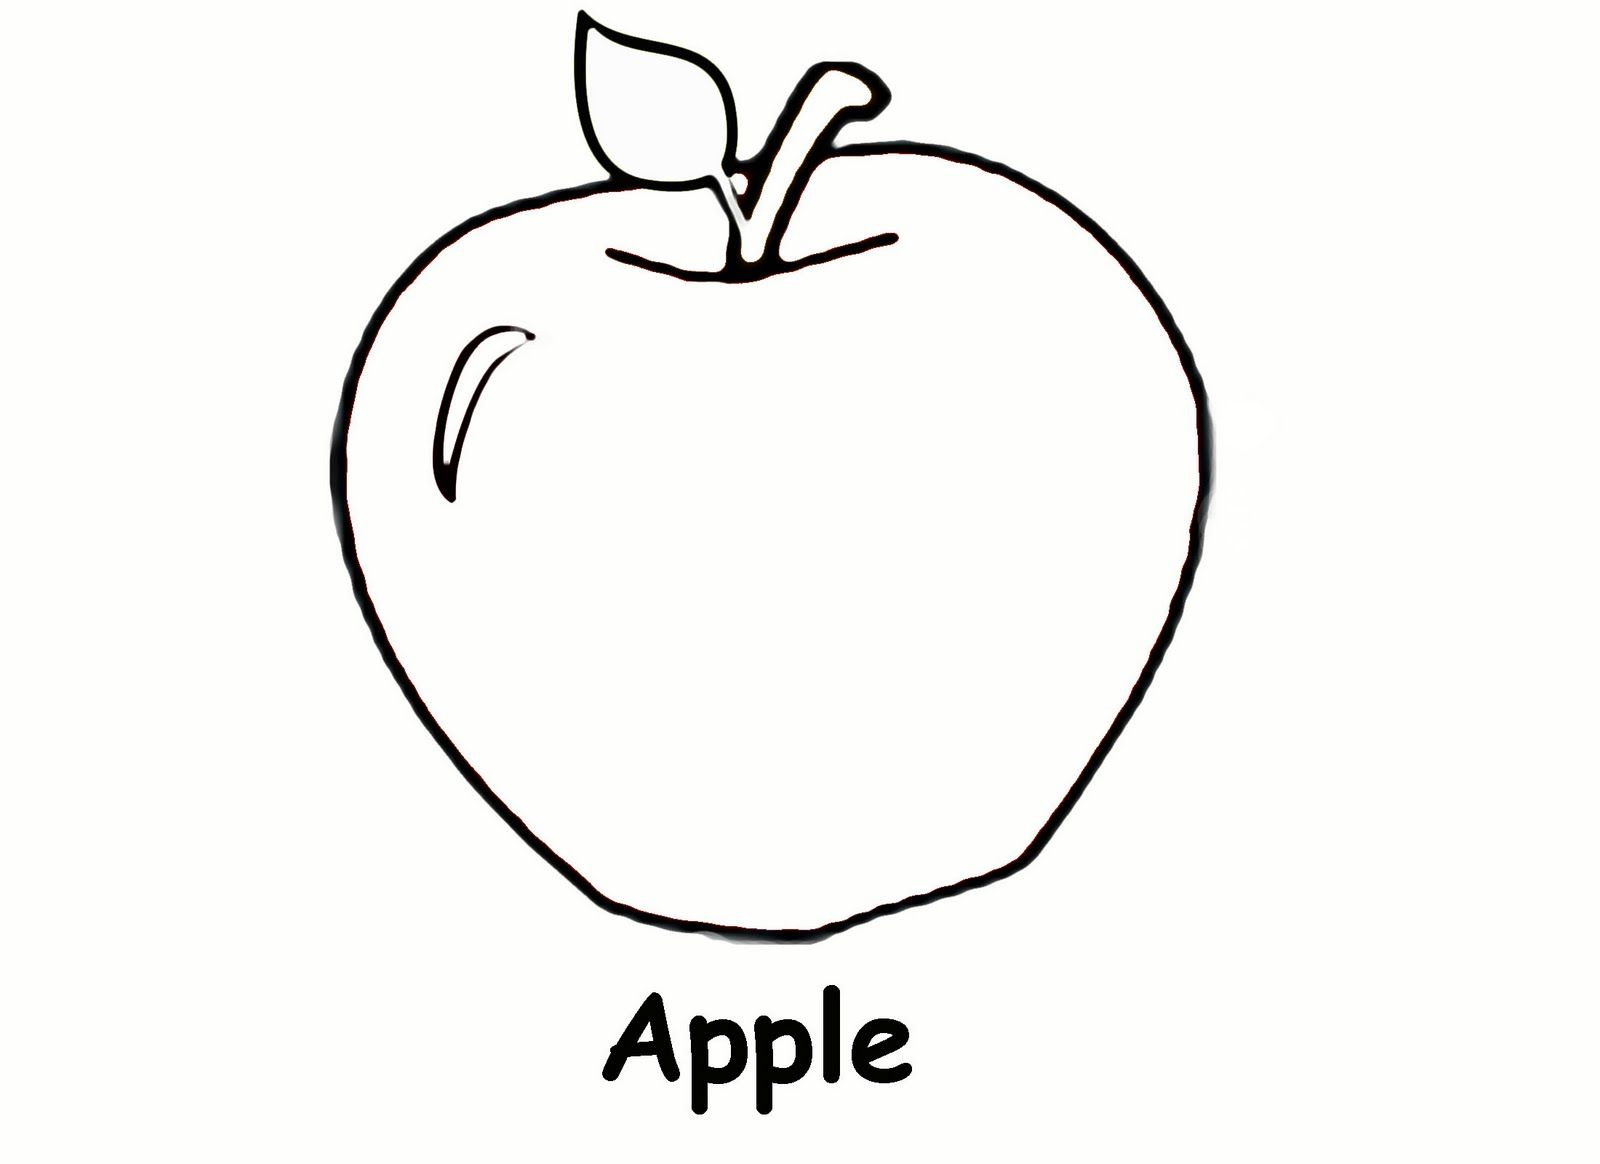 Free Printable Apple Coloring Pages For Kids | Coloring Book Pages ...